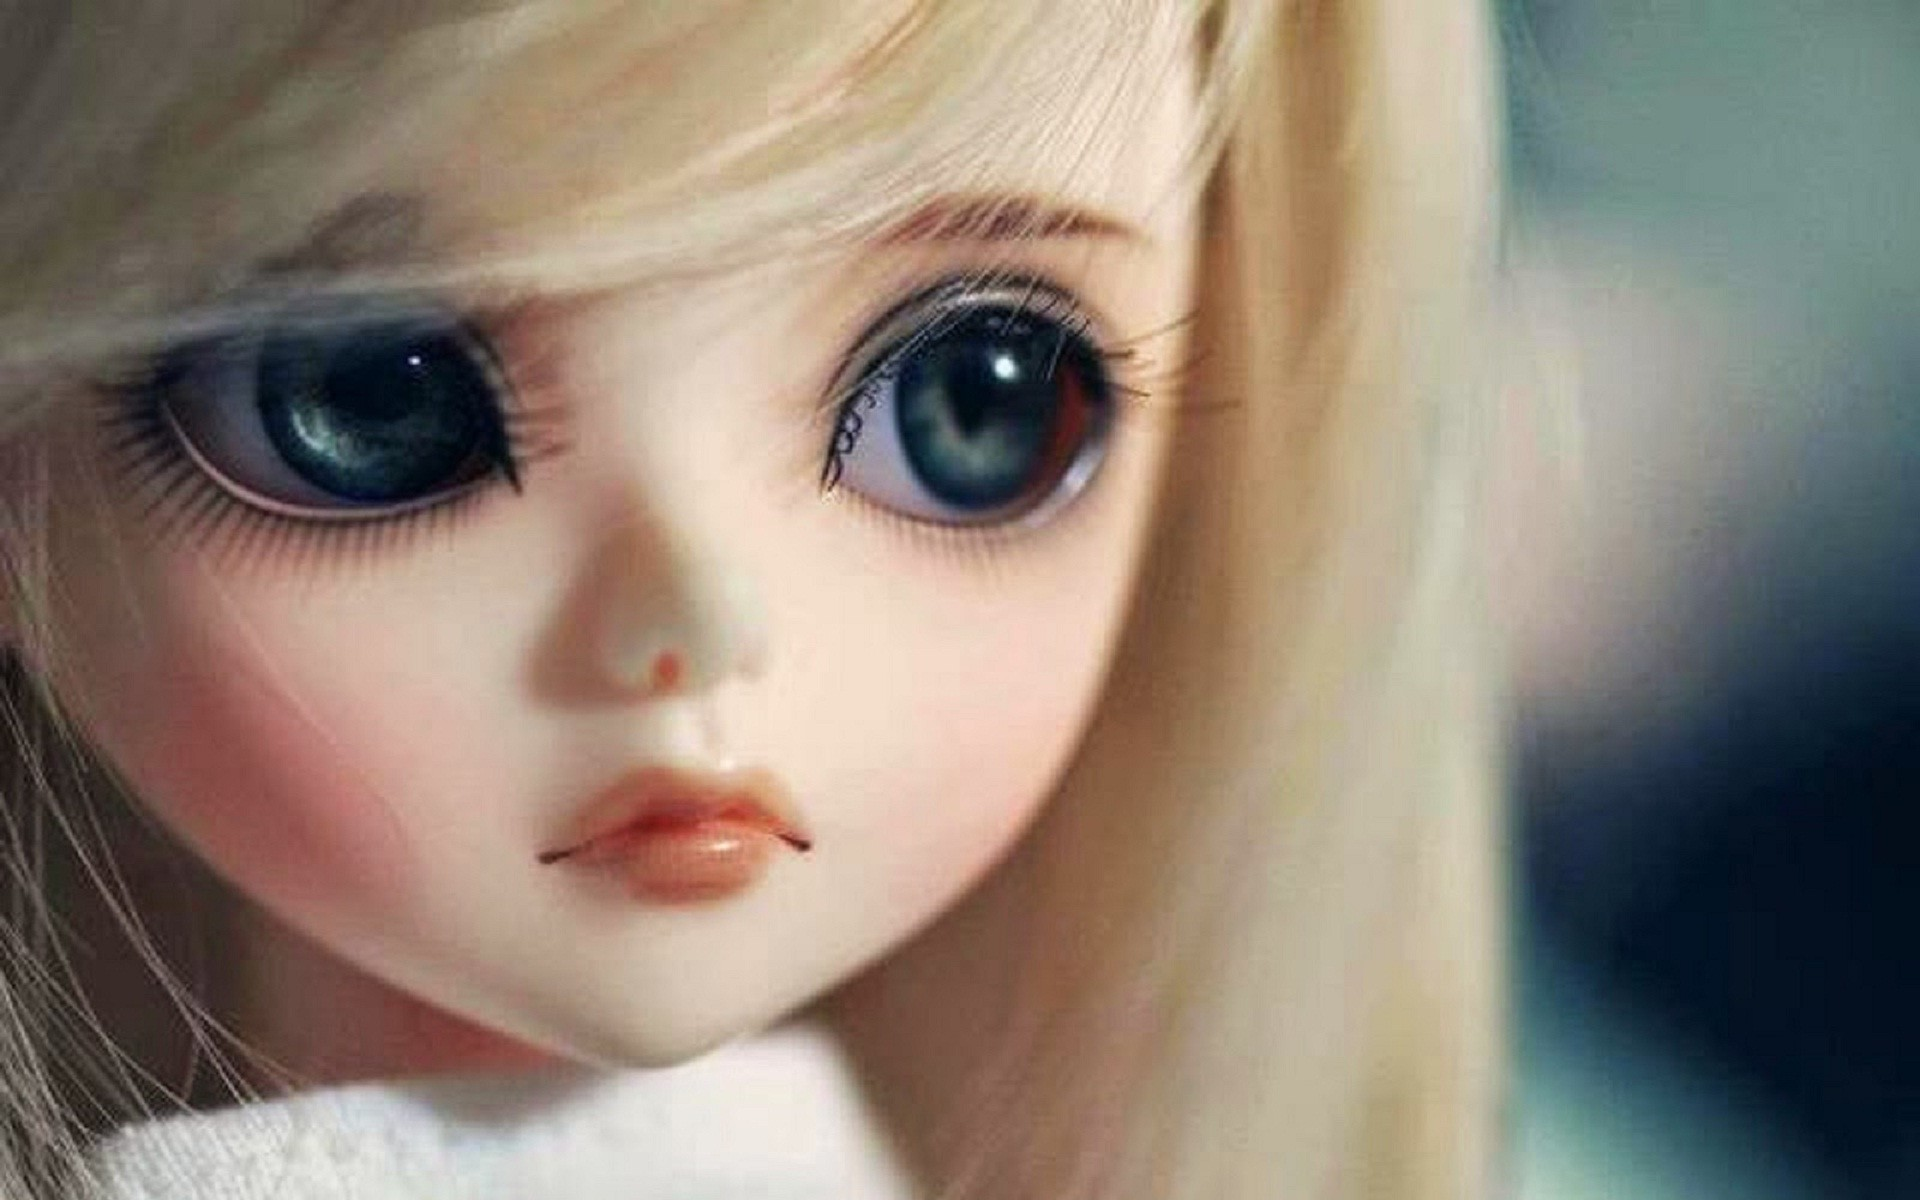 So sweet and pretty doll face wallpaper